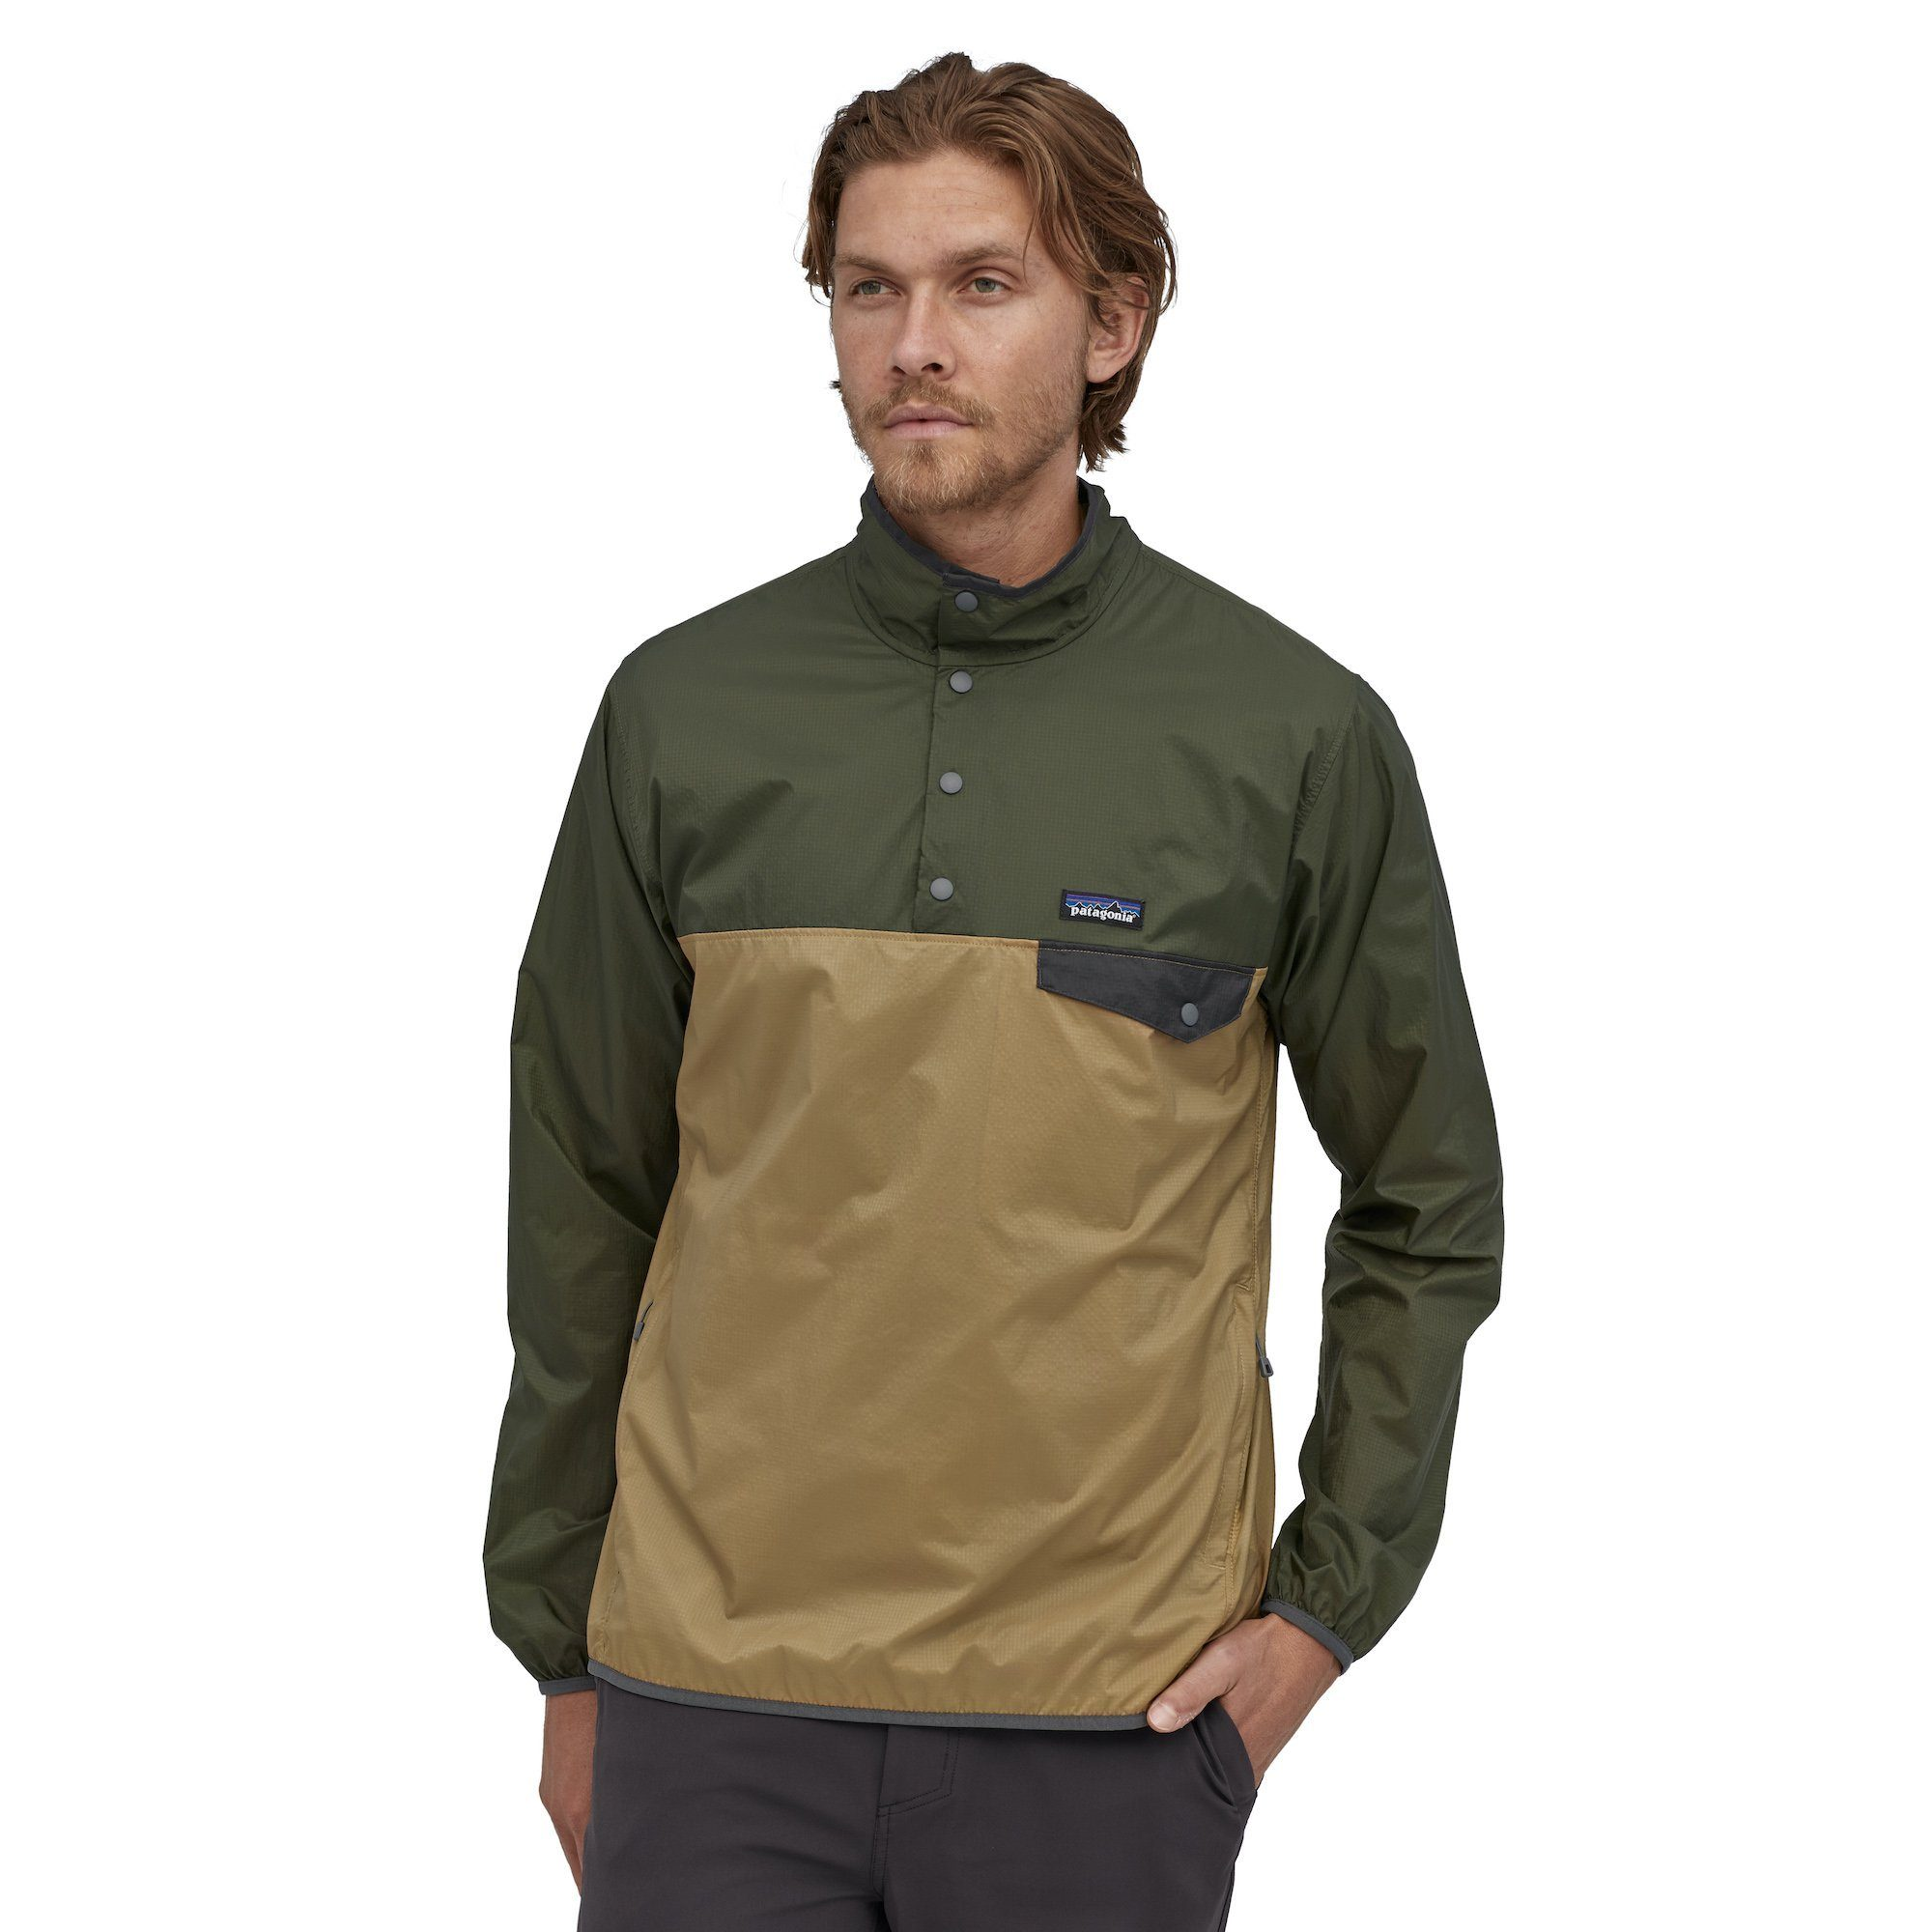 Patagonia - Houdini® Snap-T® Pullover - 100% recycled nylon - Weekendbee - sustainable sportswear